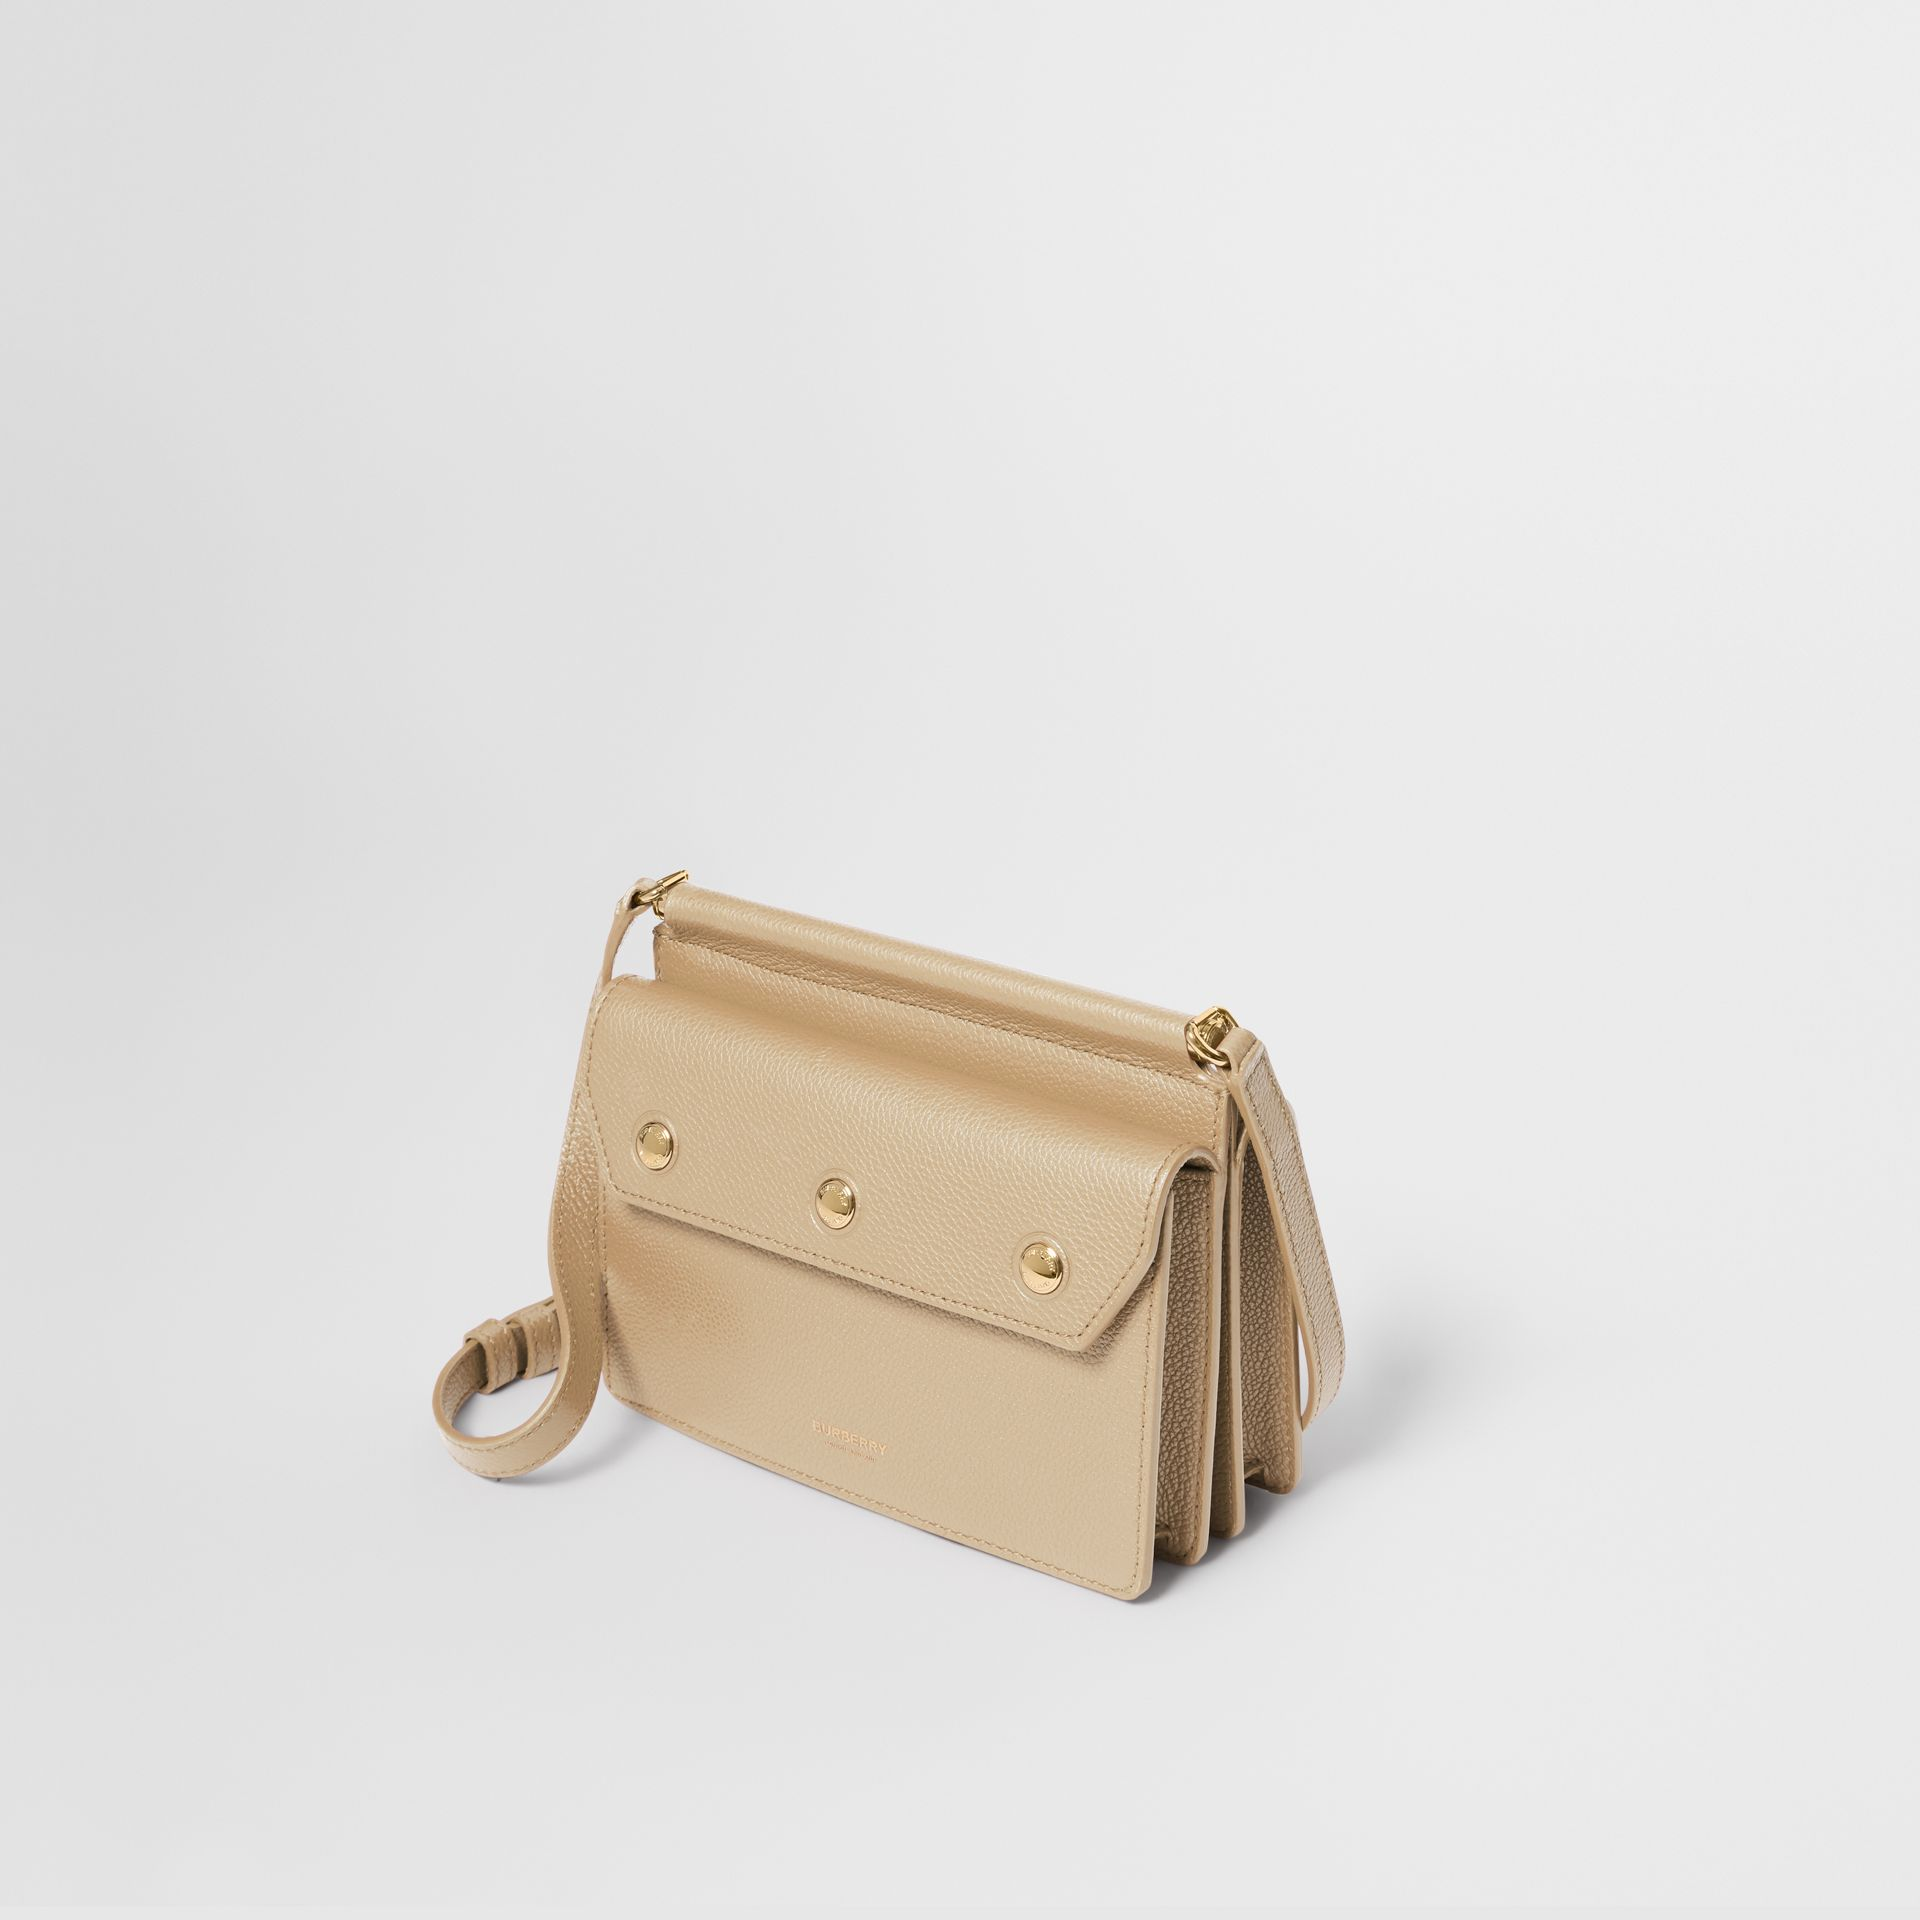 Mini Leather Title Bag with Pocket Detail in Honey - Women | Burberry United States - gallery image 3